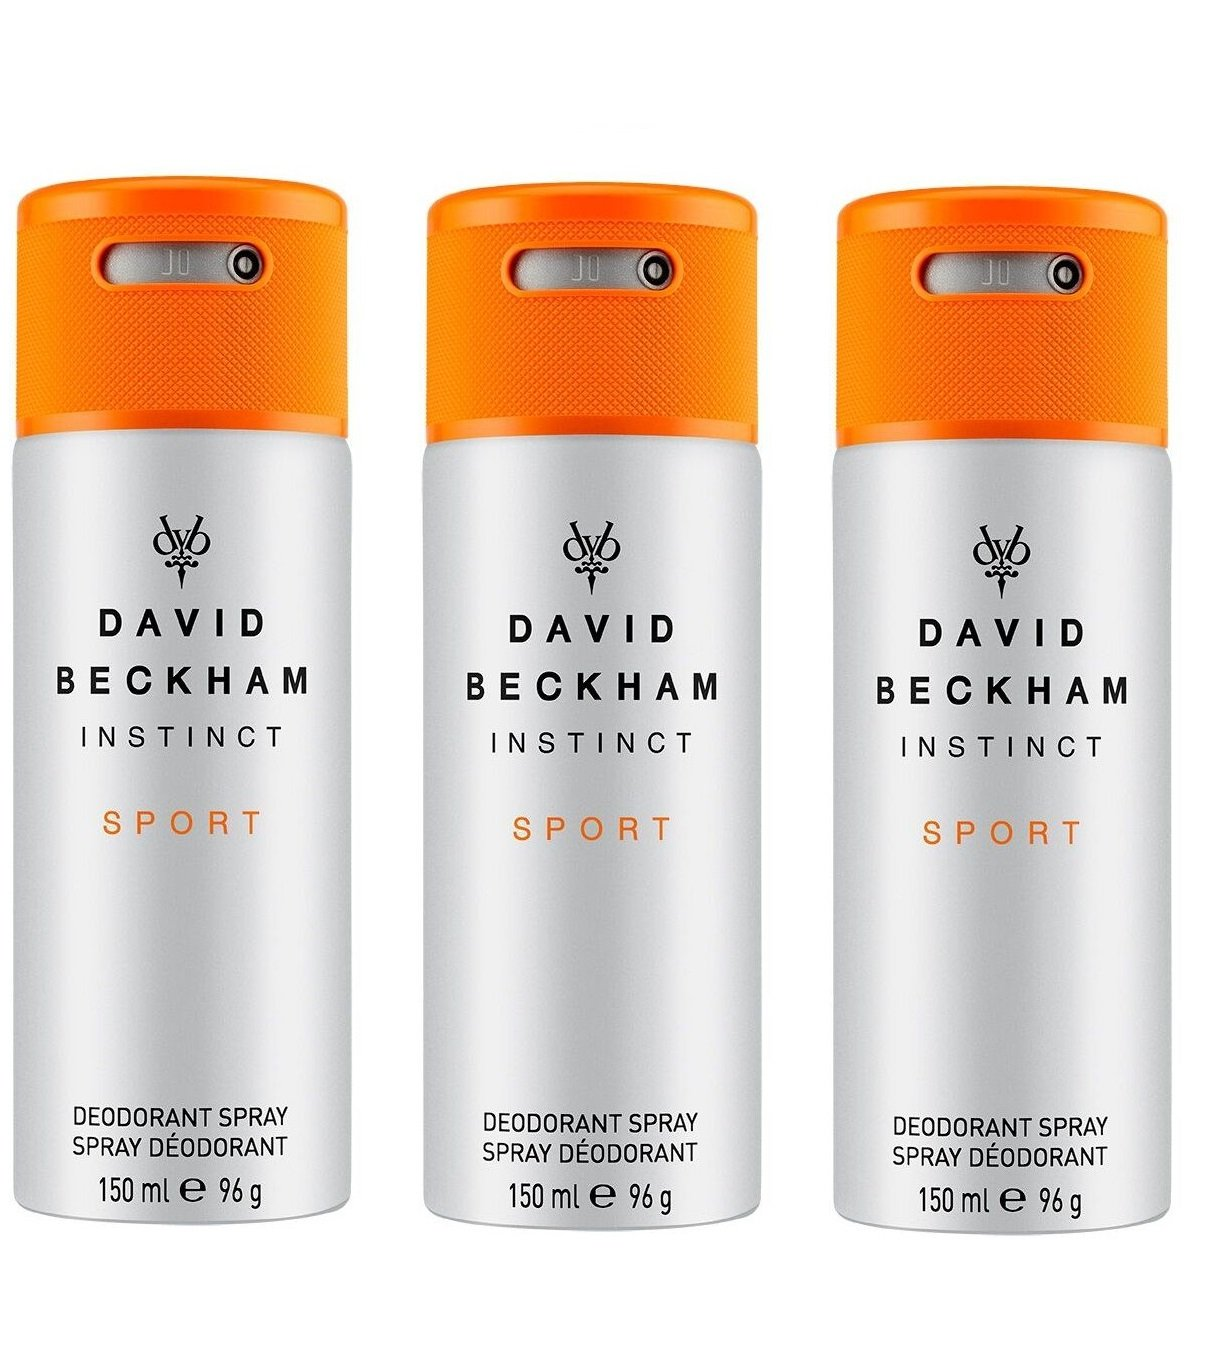 David Beckham - 3x Instinct Sport Deodorant Spray 150 ml